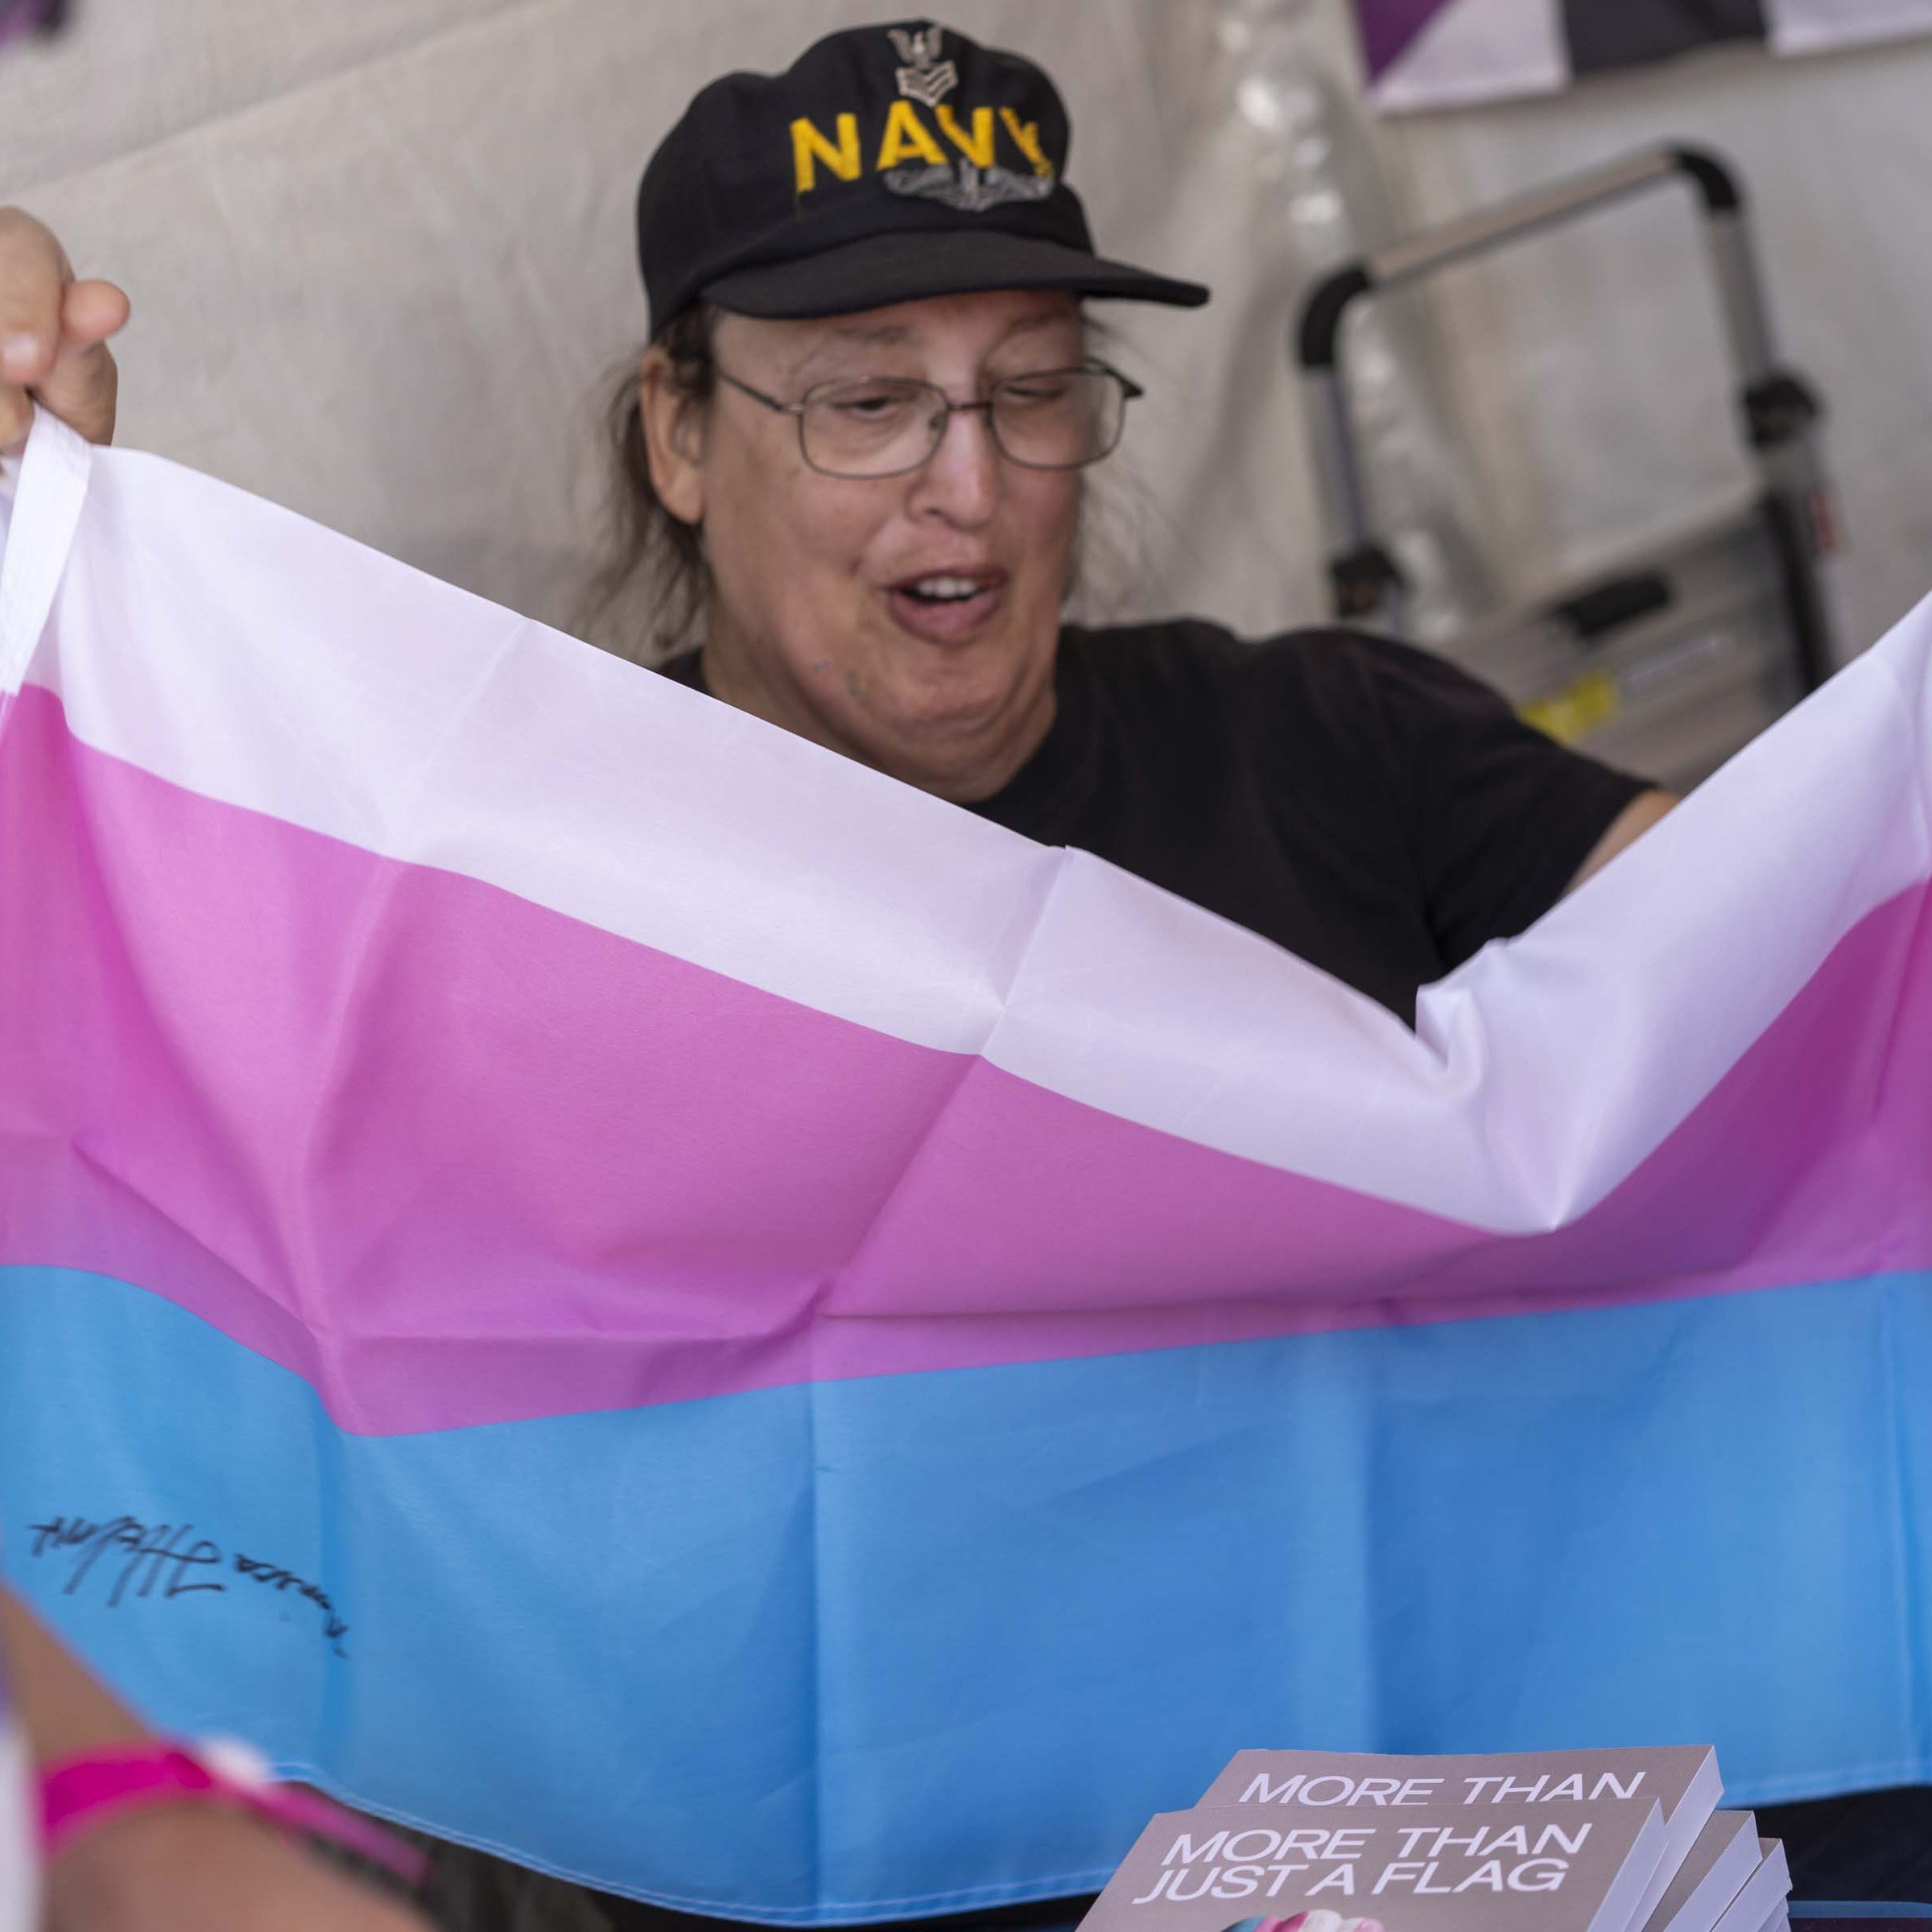 Monica Helms, creator of the transgender pride flag, is 'still amazed' to see it displayed